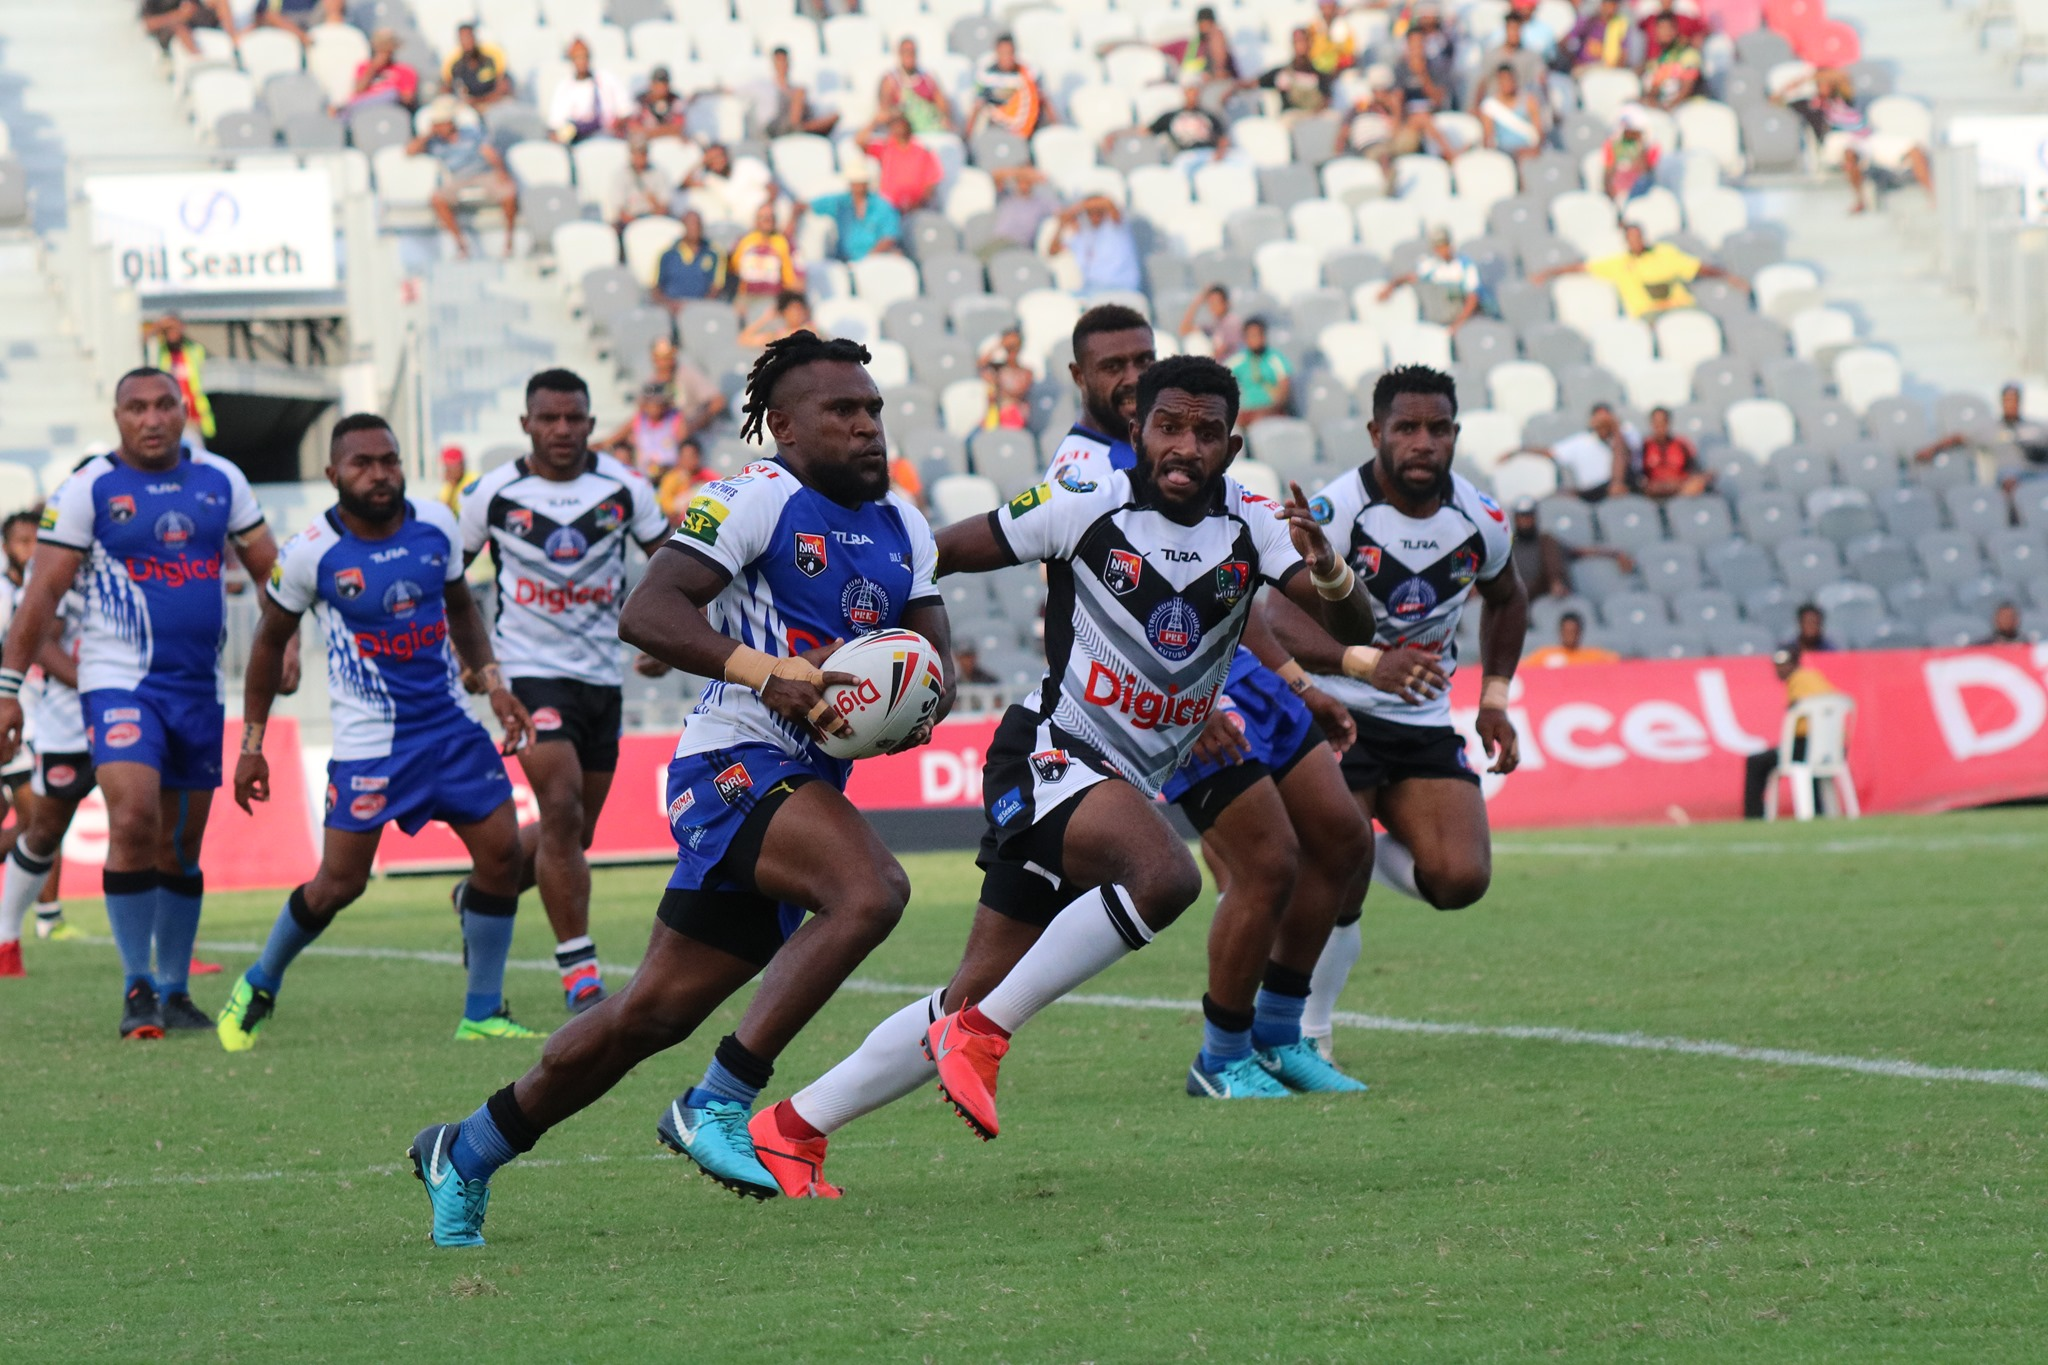 Inaugural teams for Southern Super League confirmed, whilst competition looks forward to expansion